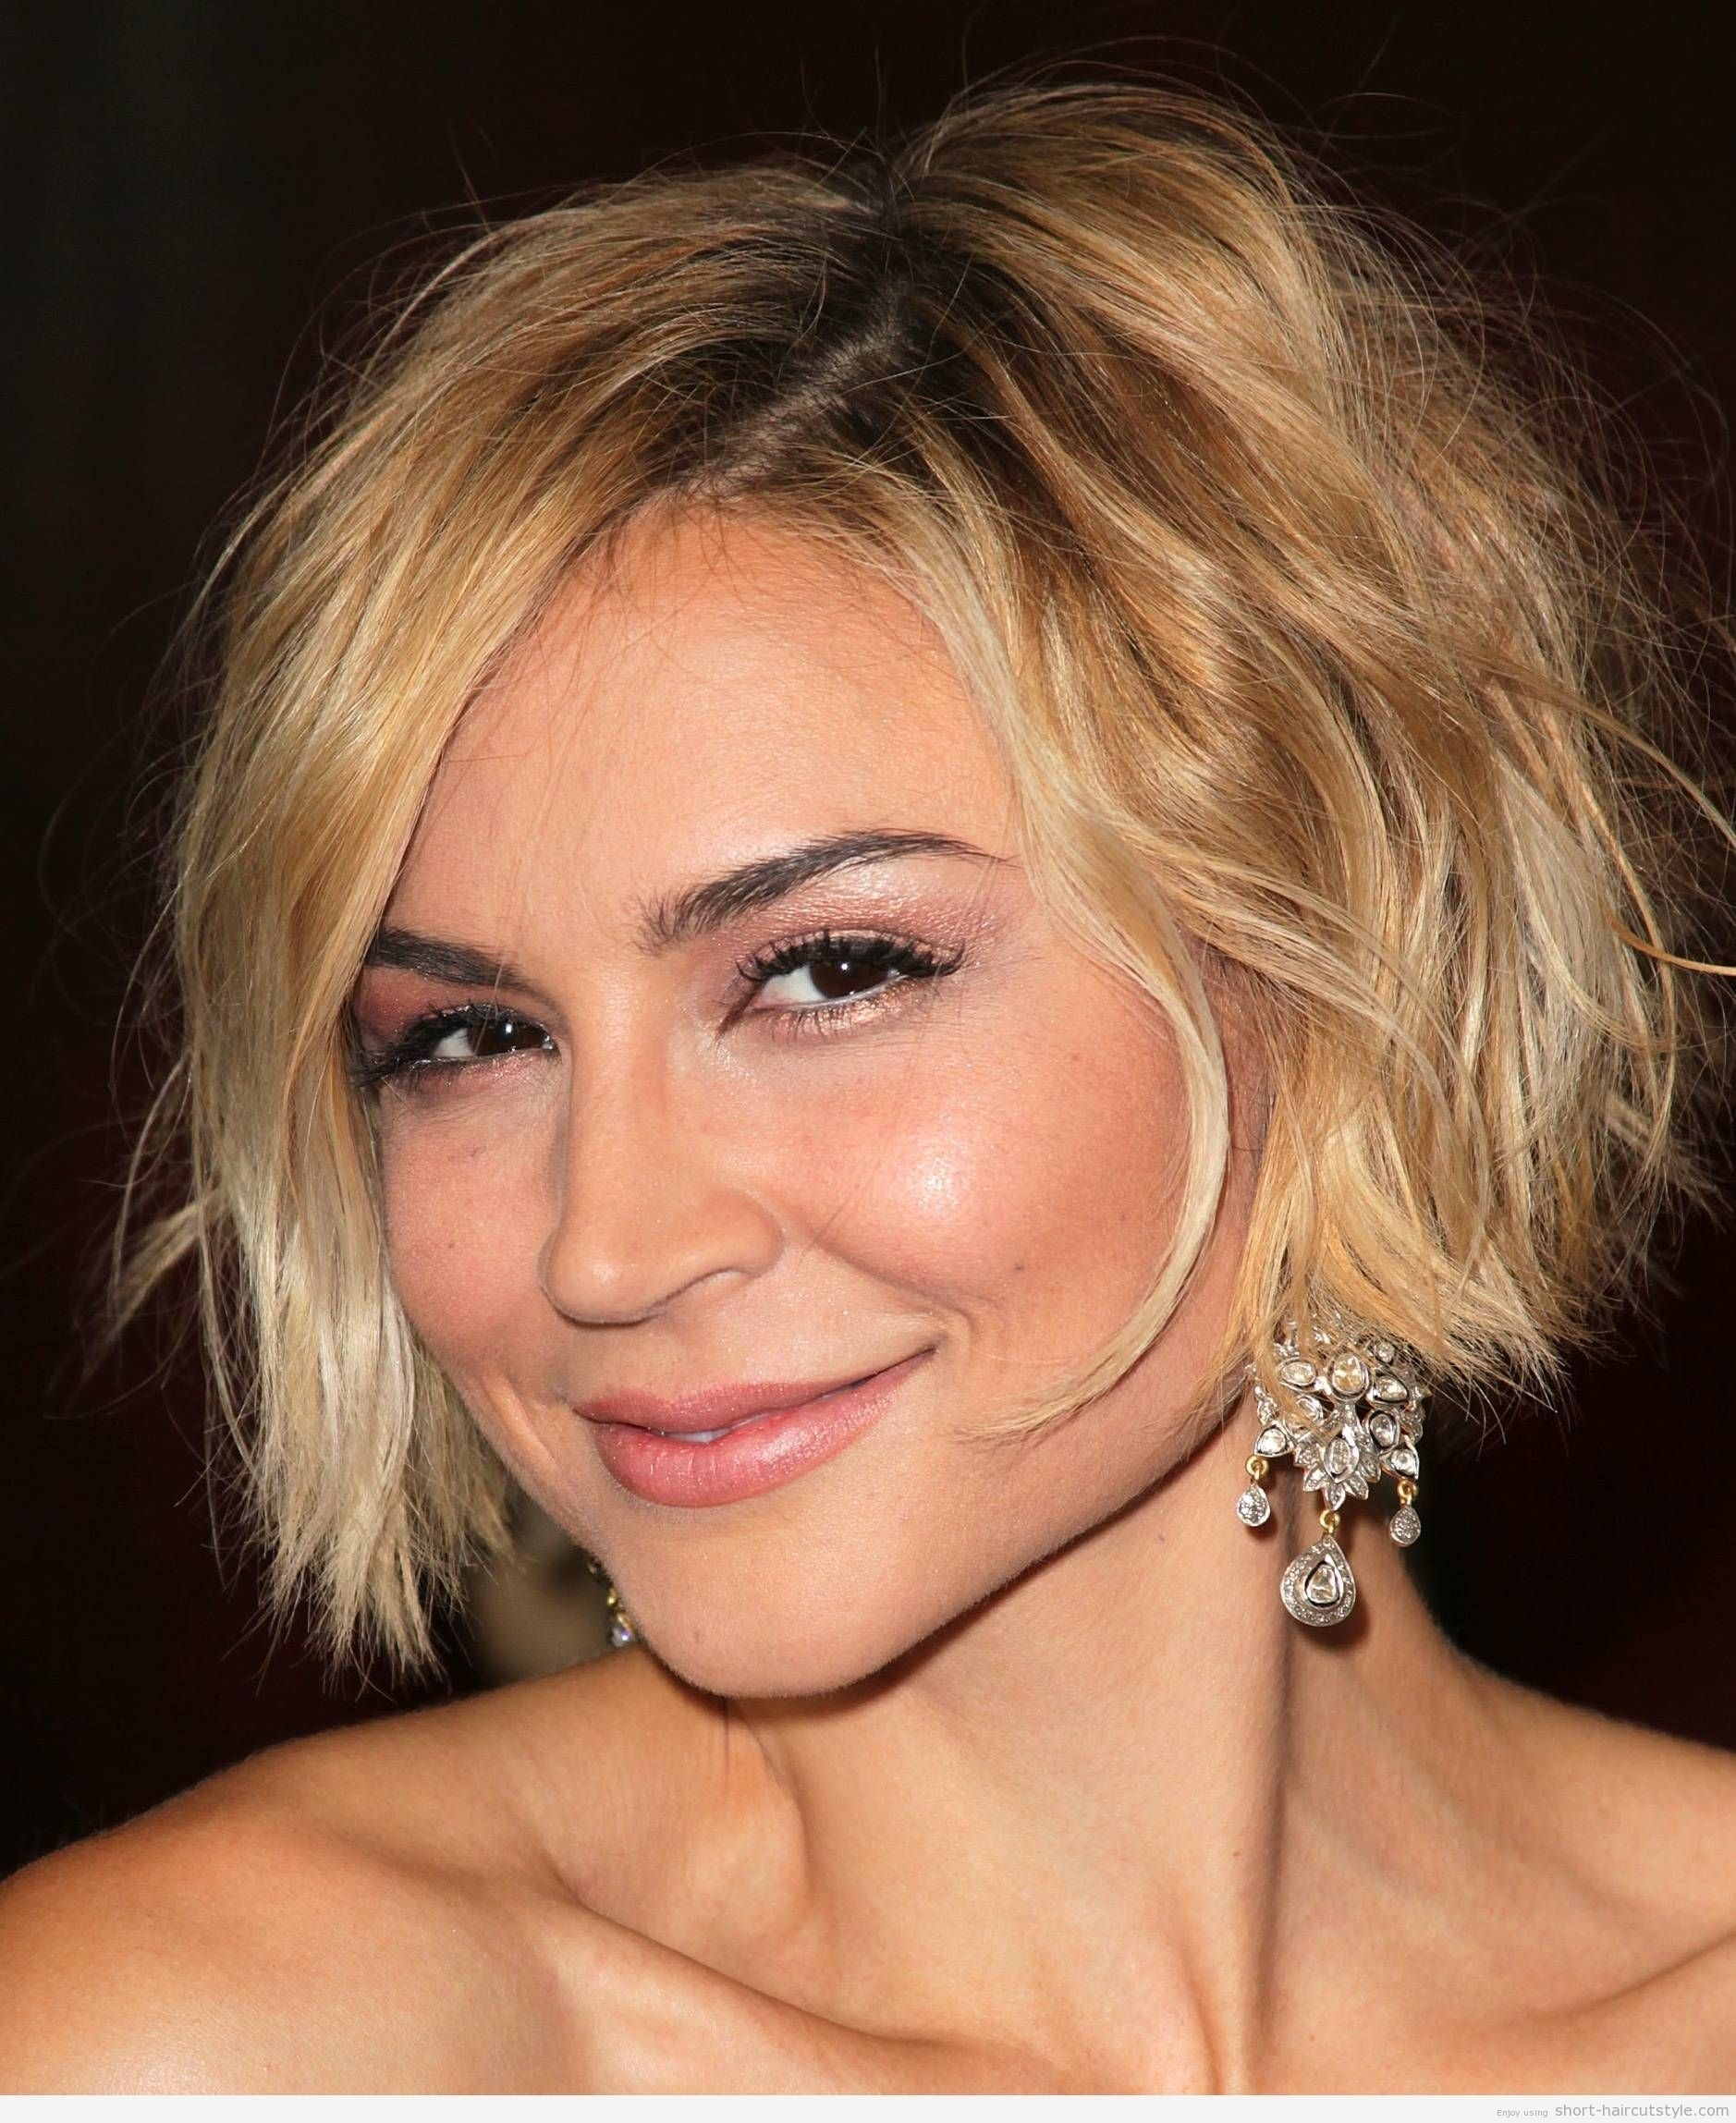 Cute Short Haircuts For Women With Square Faces | Everlasting within Cute Short Haircut For Square Face